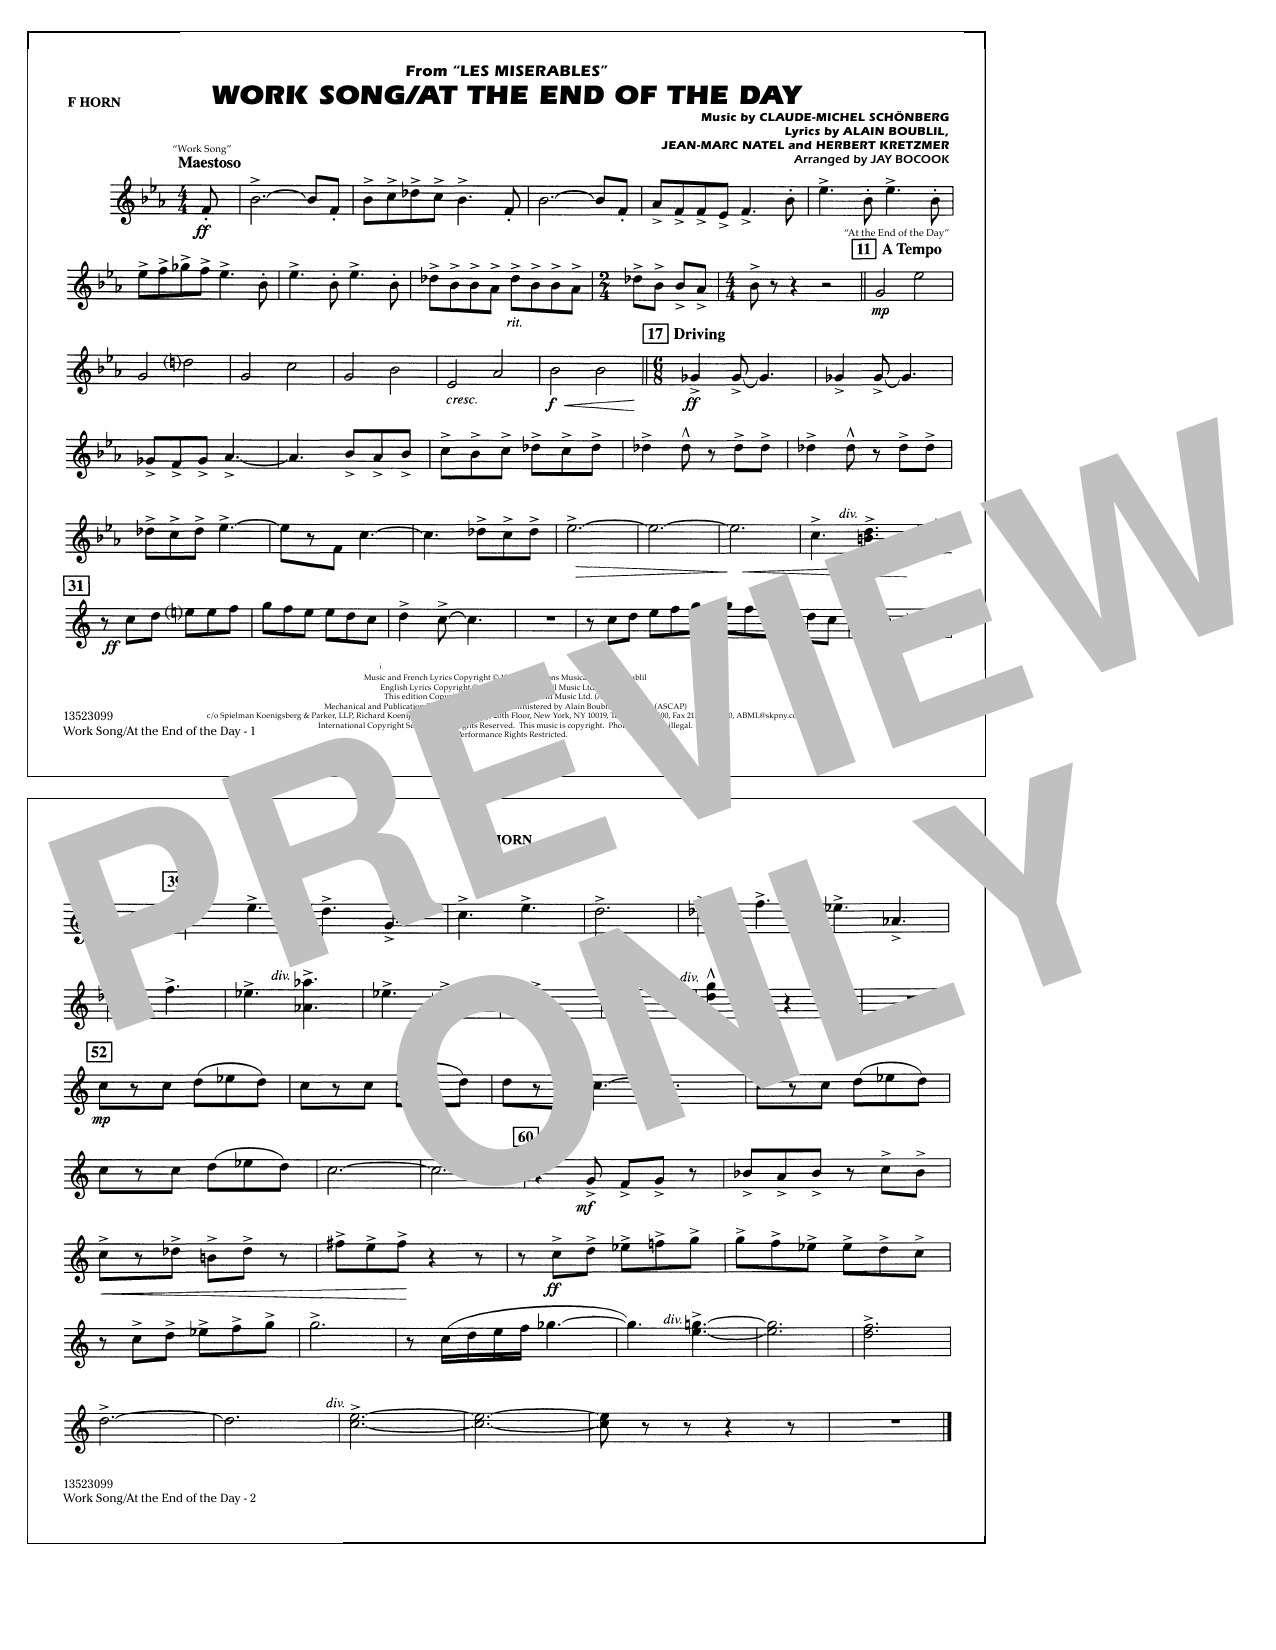 Work Song/At the End of the Day (Les Misérables) (arr. Jay Bocook) - F Horn (Marching Band)